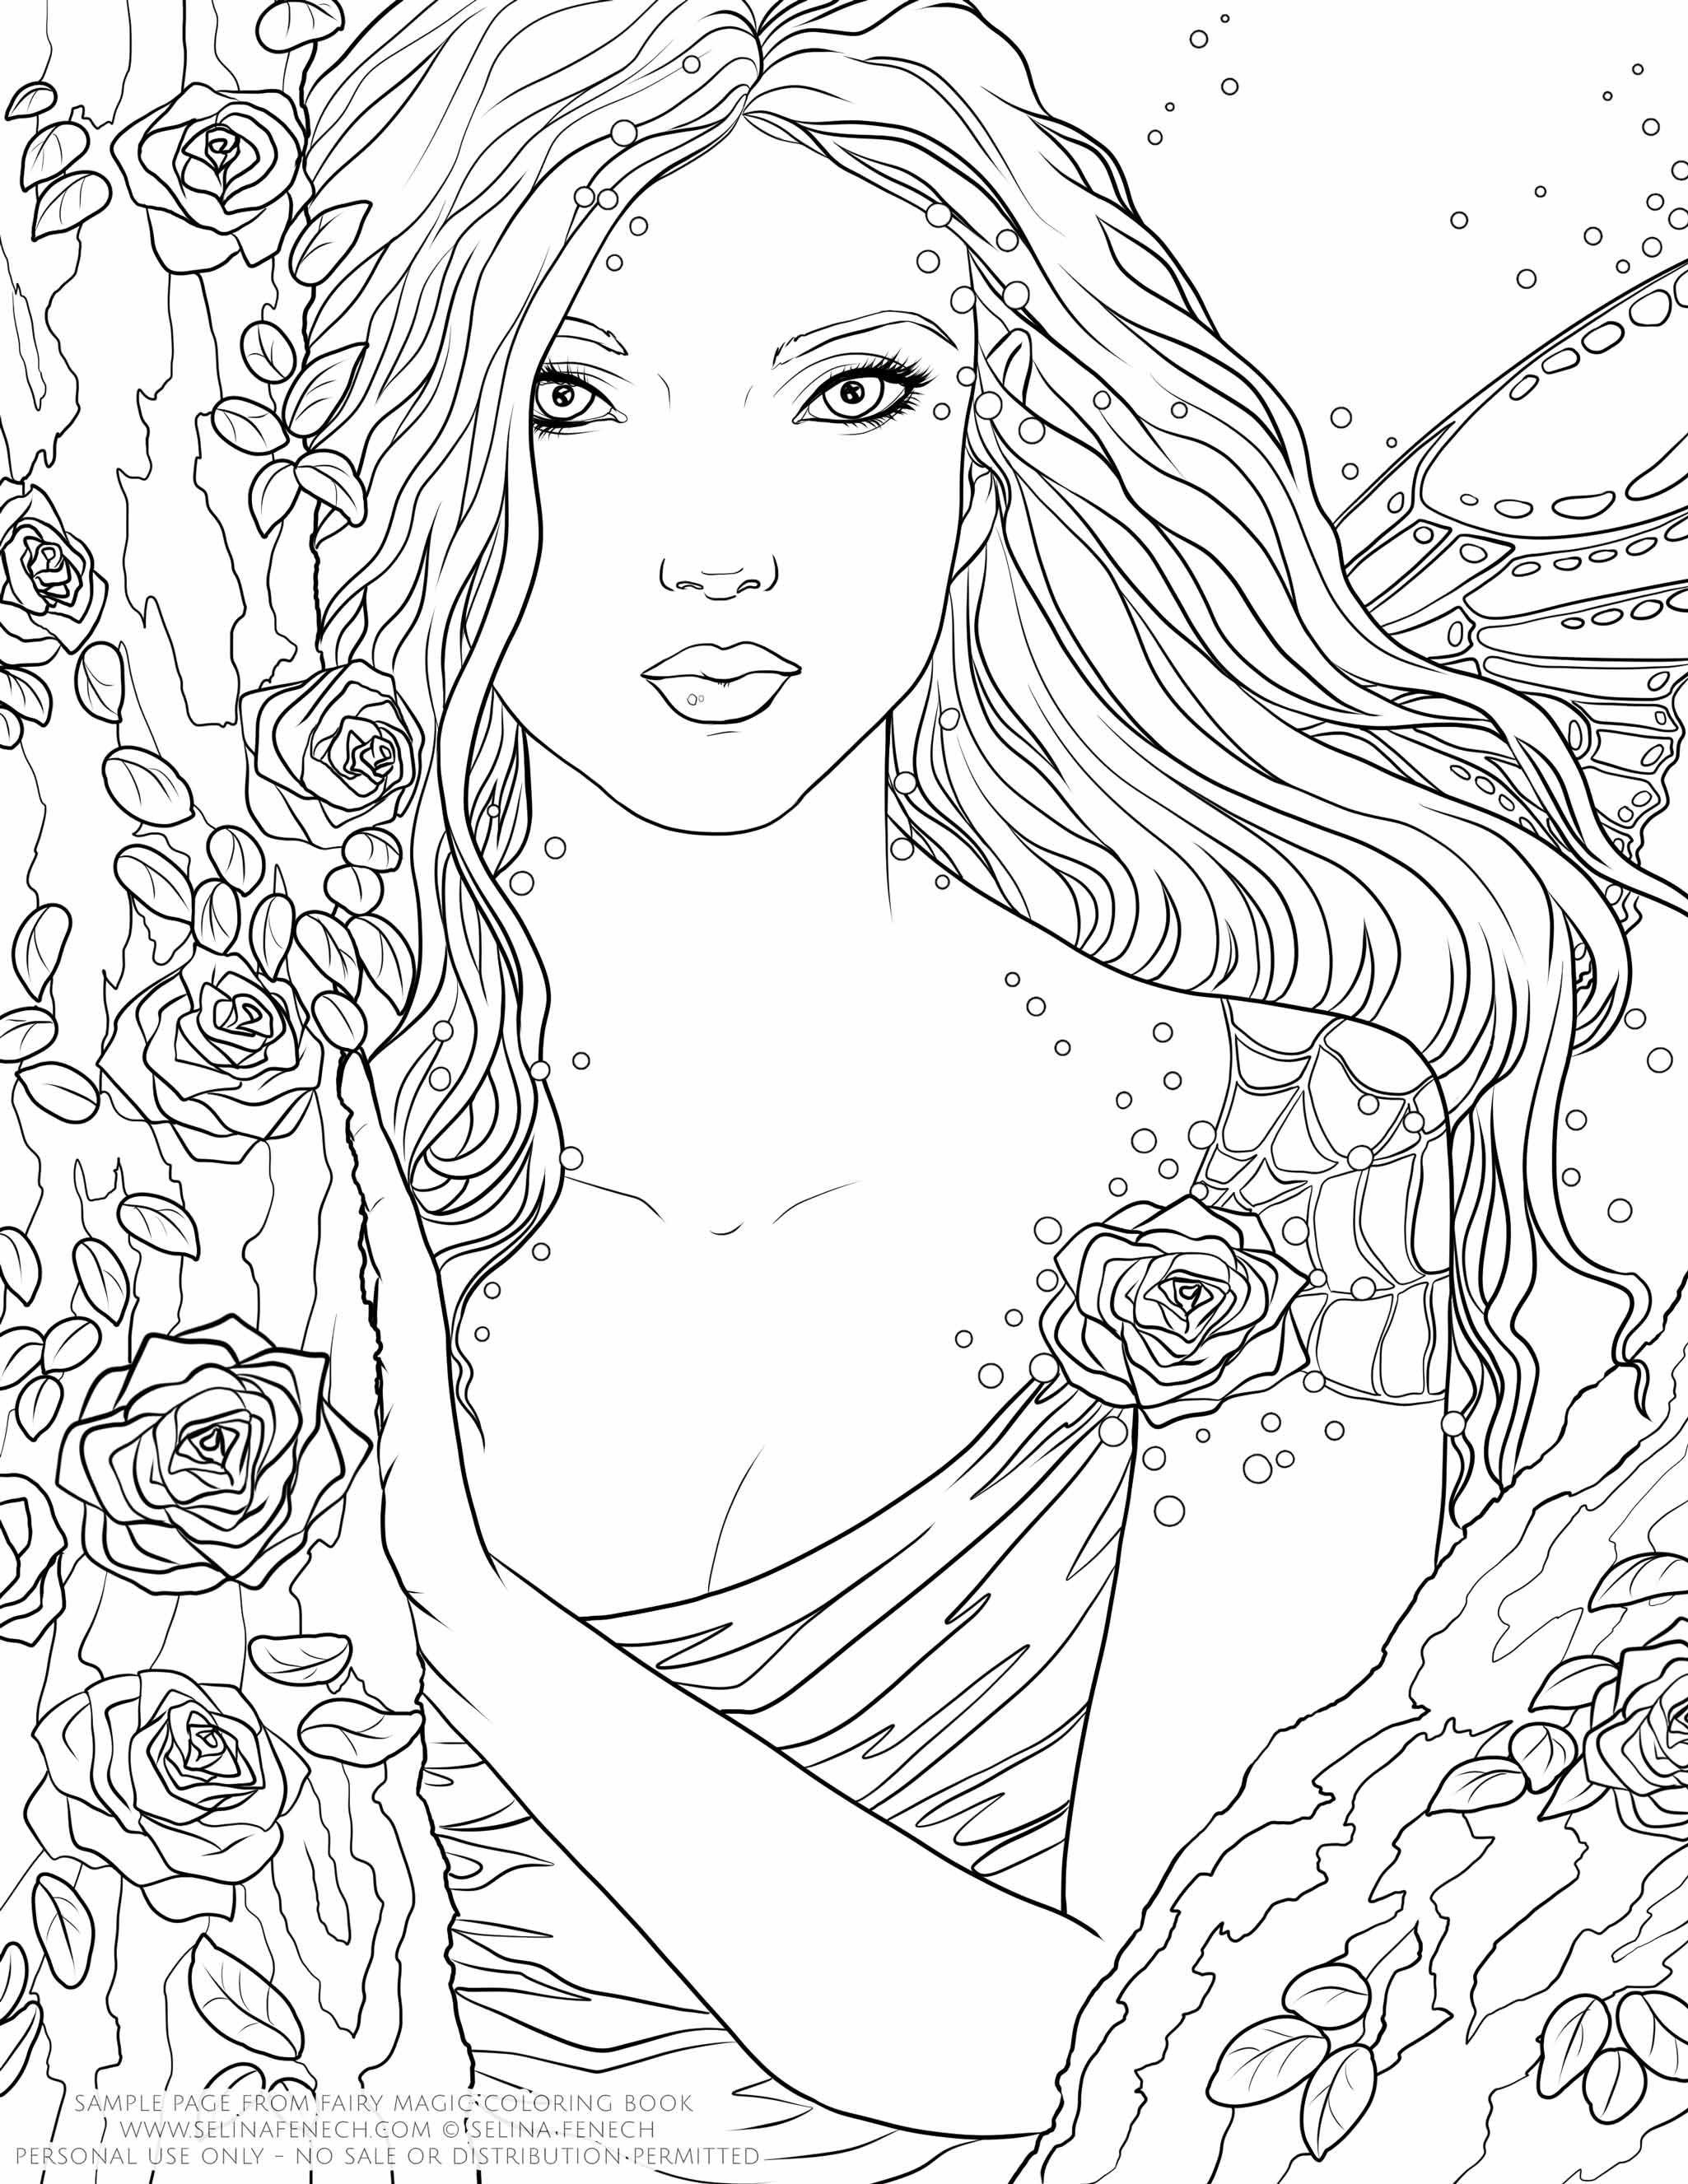 Pin By Kim Kalkstein On Coloring Pages Pinterest Adult Coloring